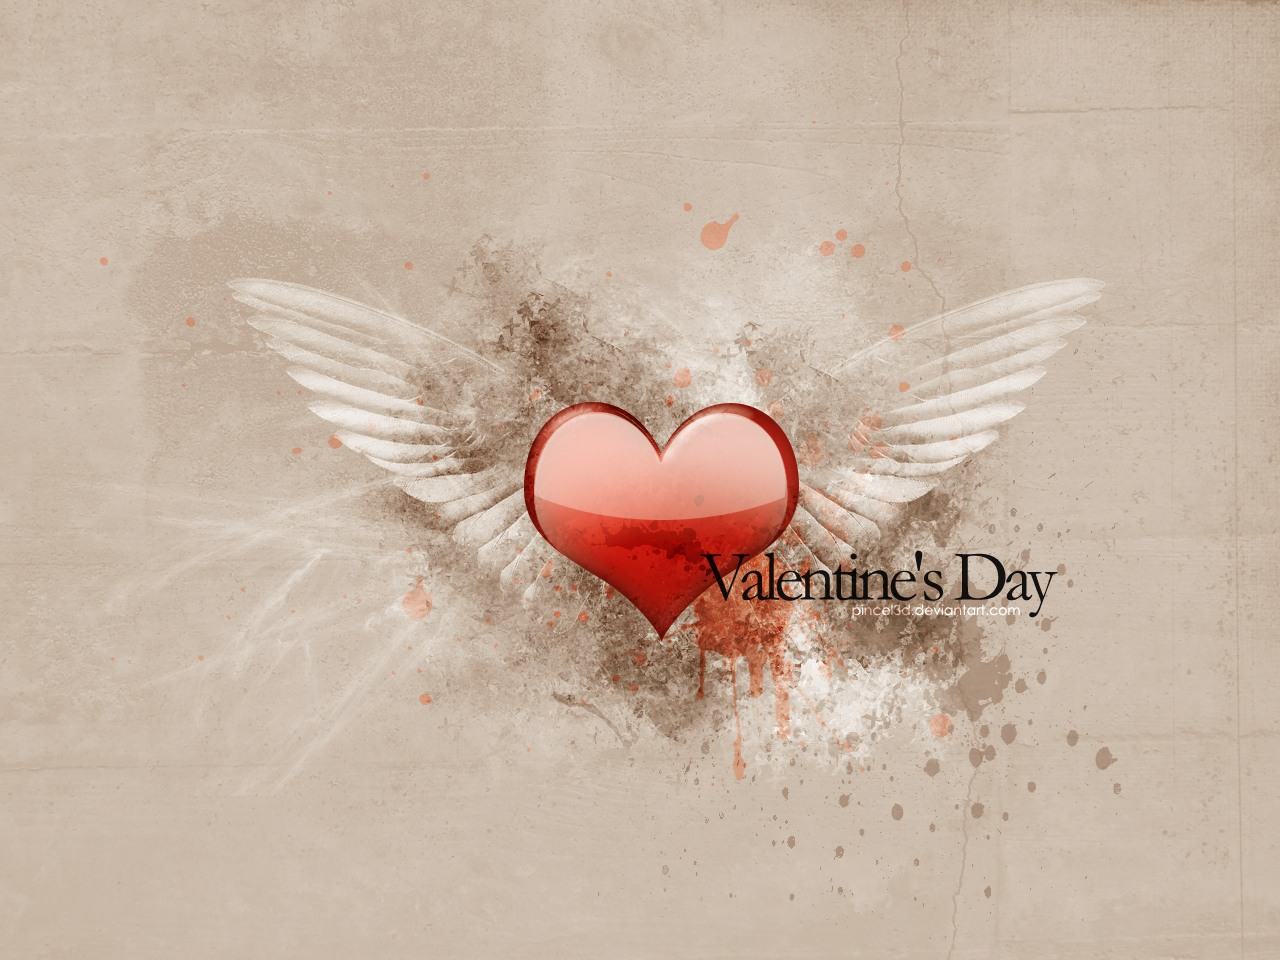 06p-8602-1-valentines-day-wallpaper.jpg